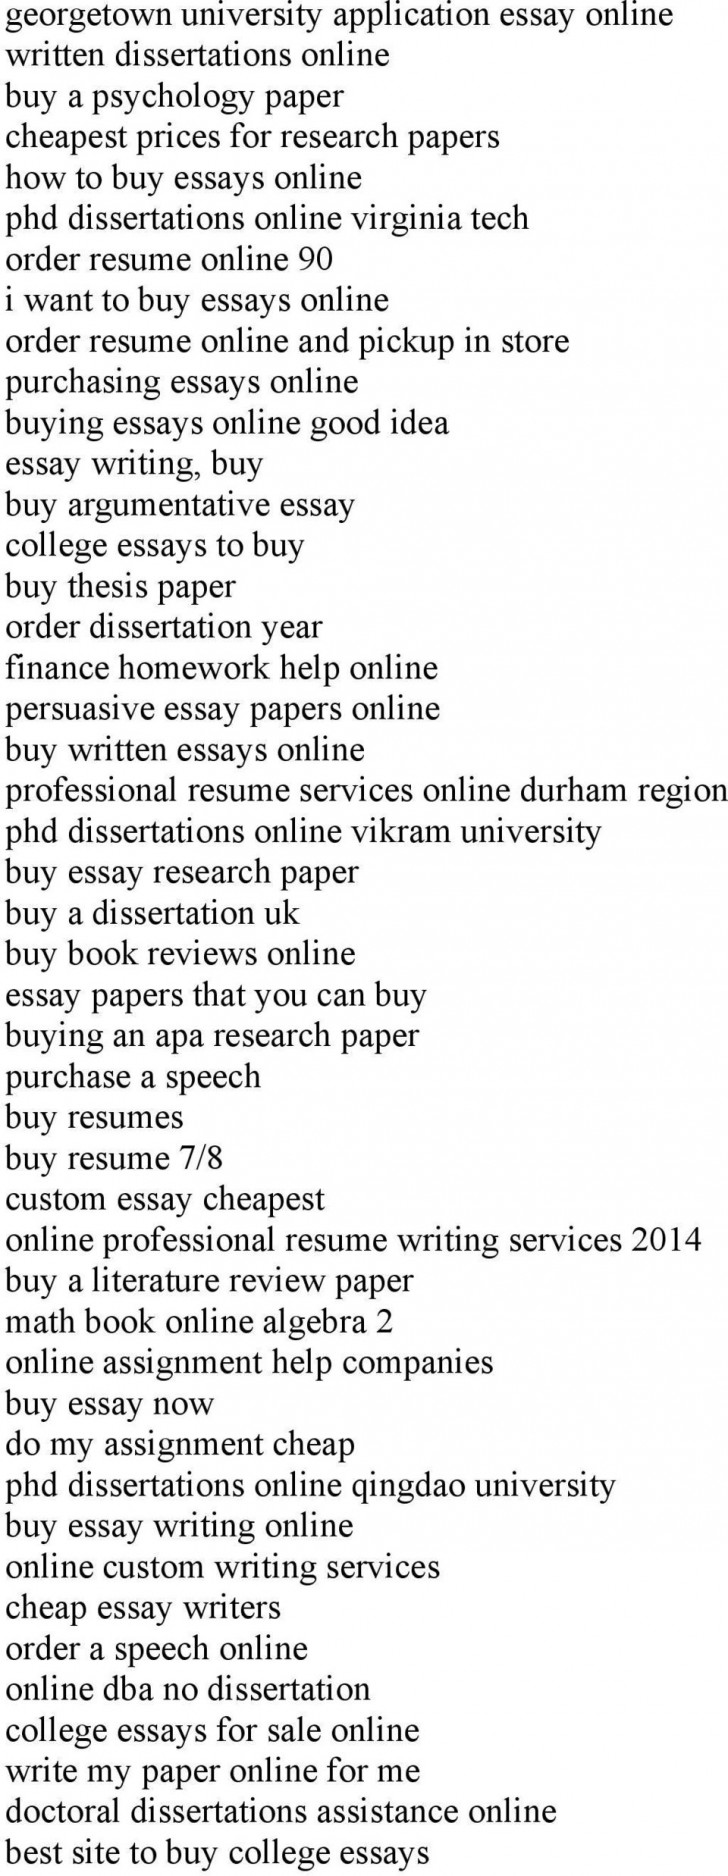 004 Research Paper Buying Page 4 Best A Is Plagiarism Impulse Behavior Online 728